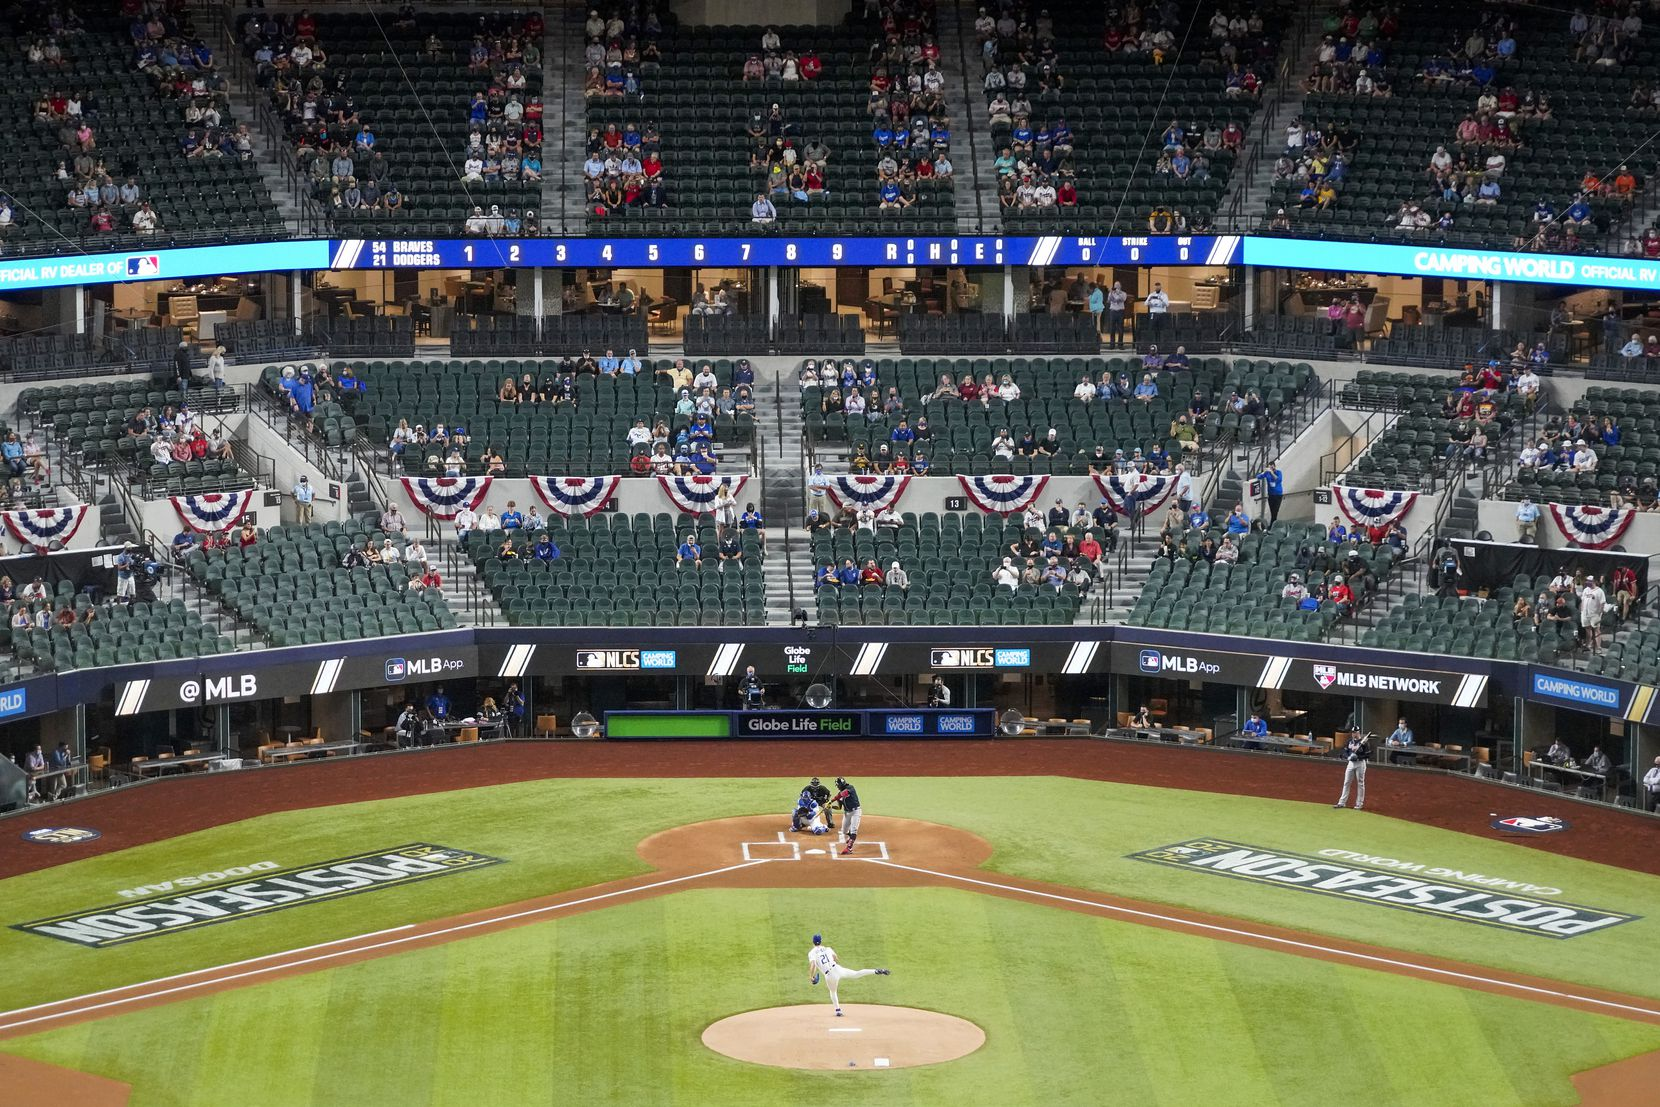 Los Angeles Dodgers starting pitcher Walker Buehler delivers the first pitch of the game to Atlanta Braves center fielder Ronald Acuna Jr. during first inning in Game 1 of a National League Championship Series at Globe Life Field on Monday, Oct. 12, 2020. (Smiley N. Pool/The Dallas Morning News)